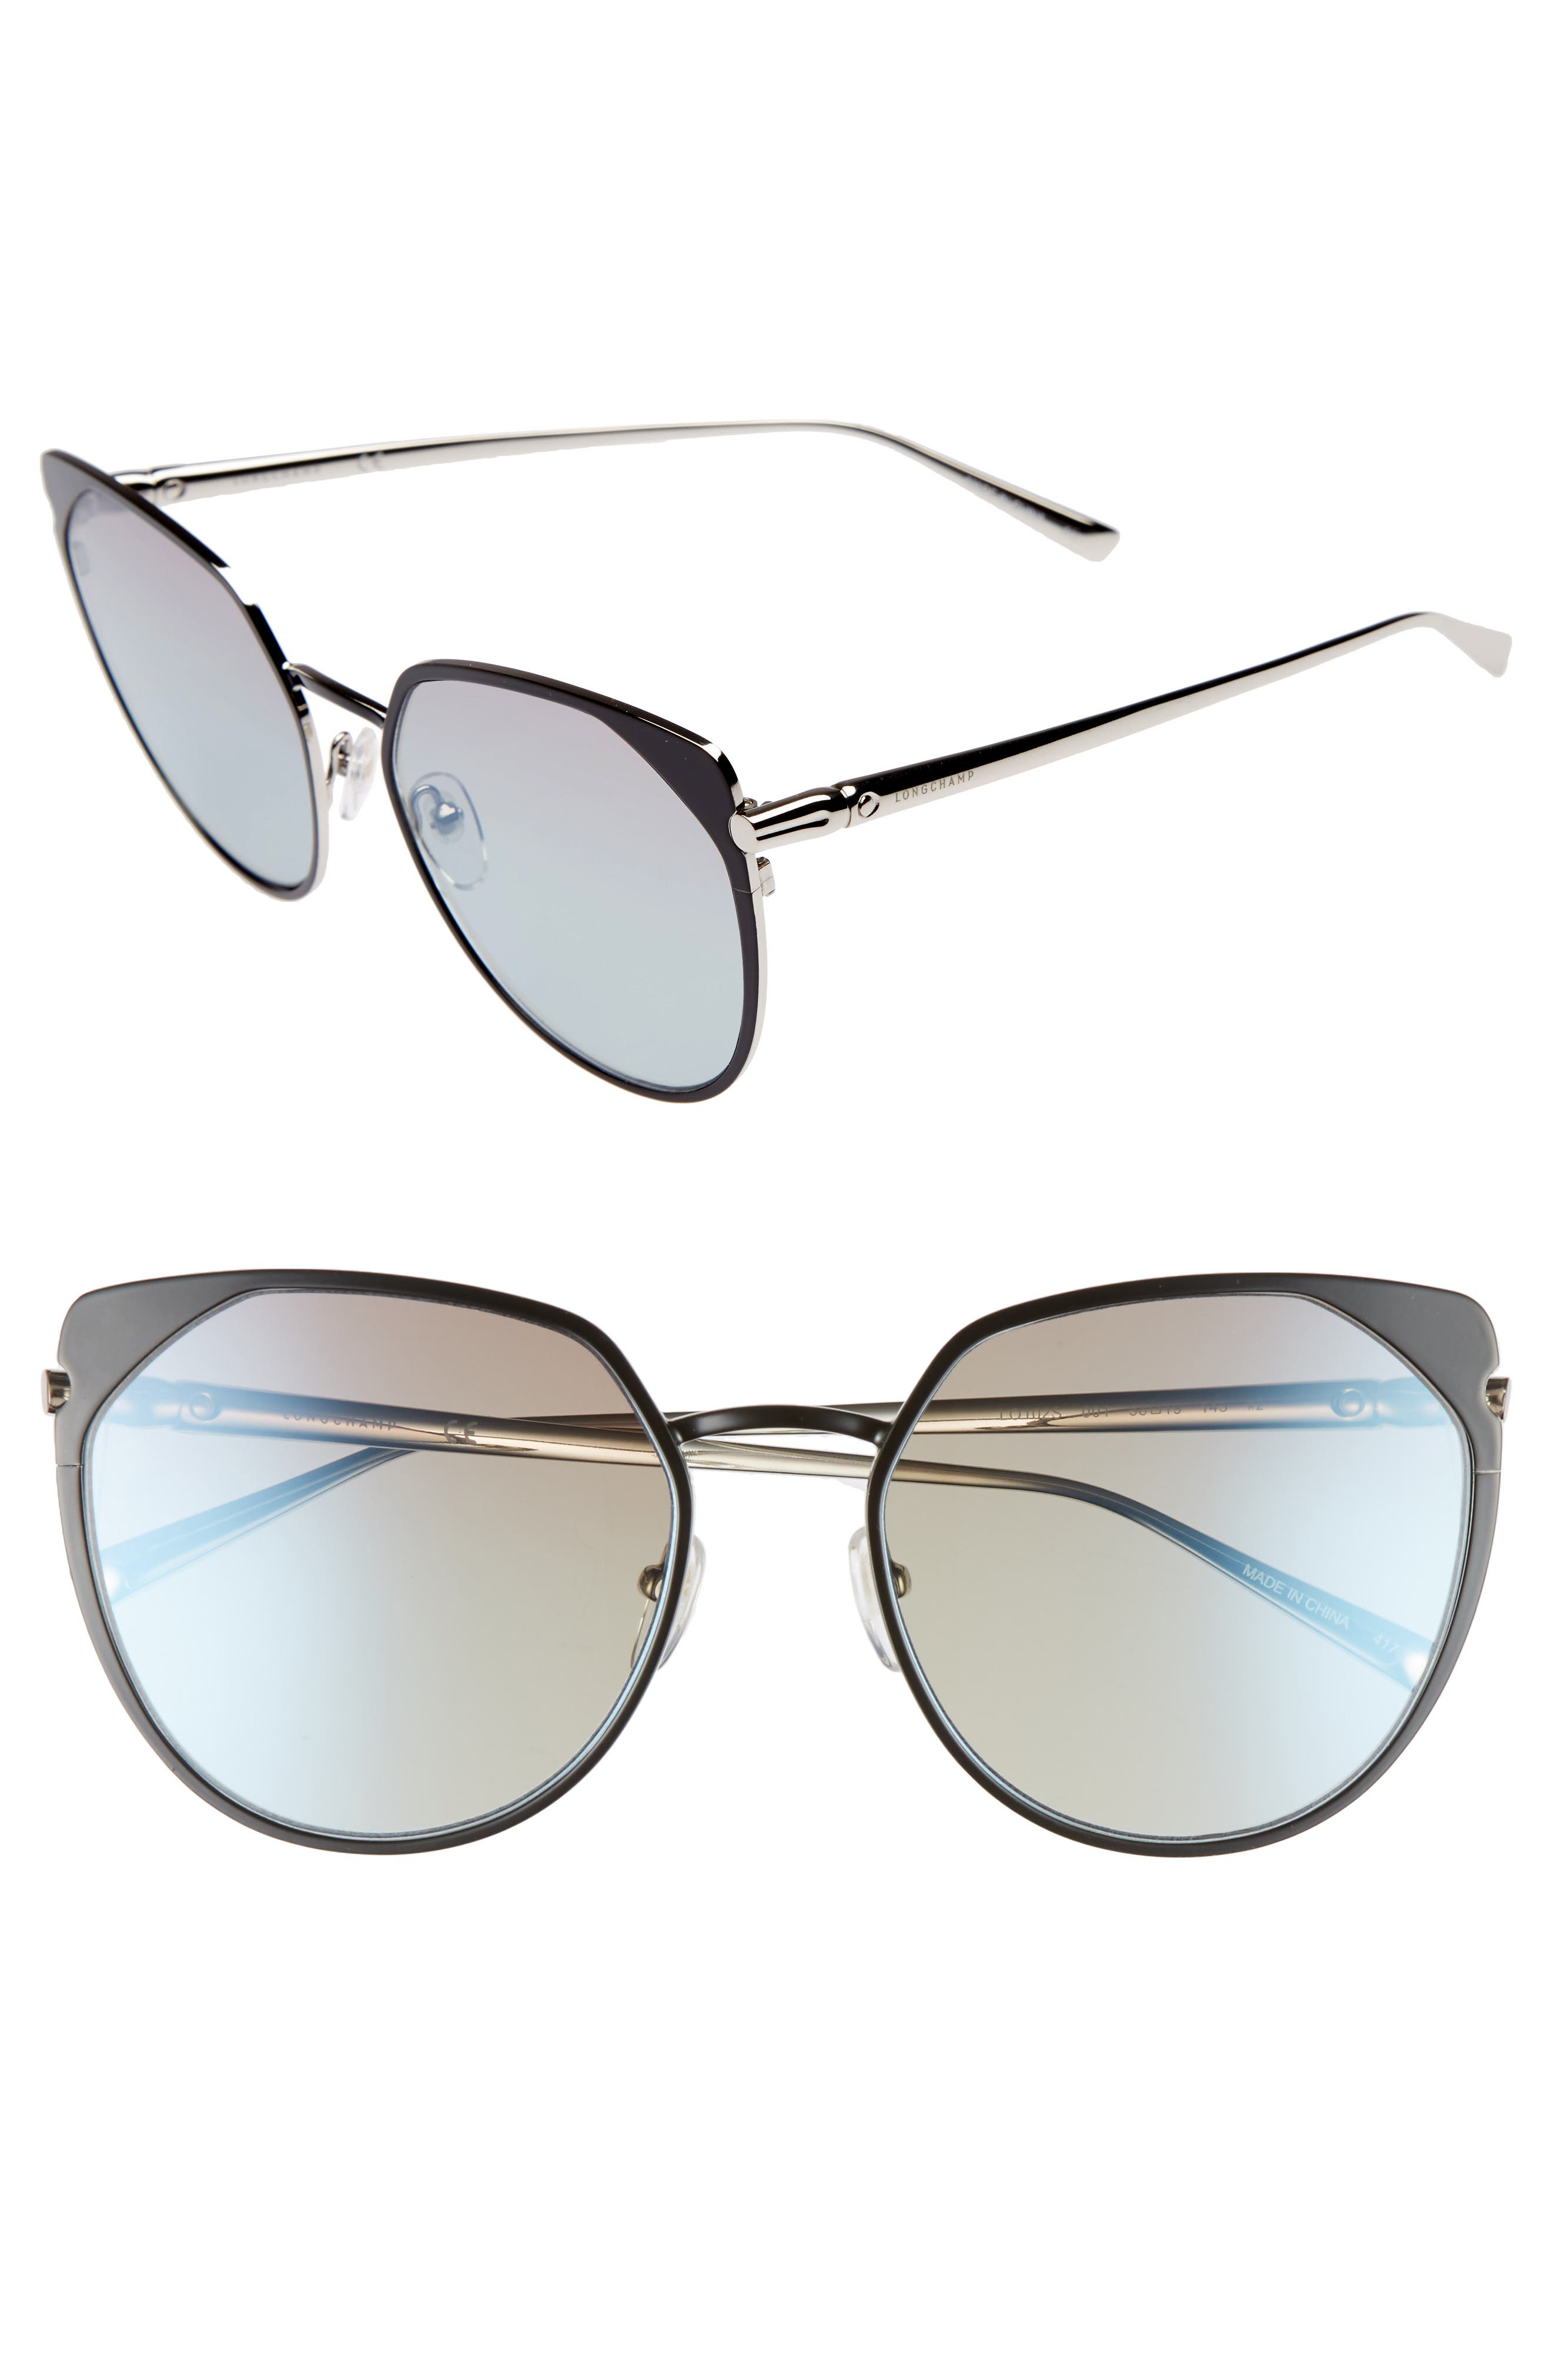 58mm Rounded Cat Eye Sunglasses,                         Main,                         color, 001